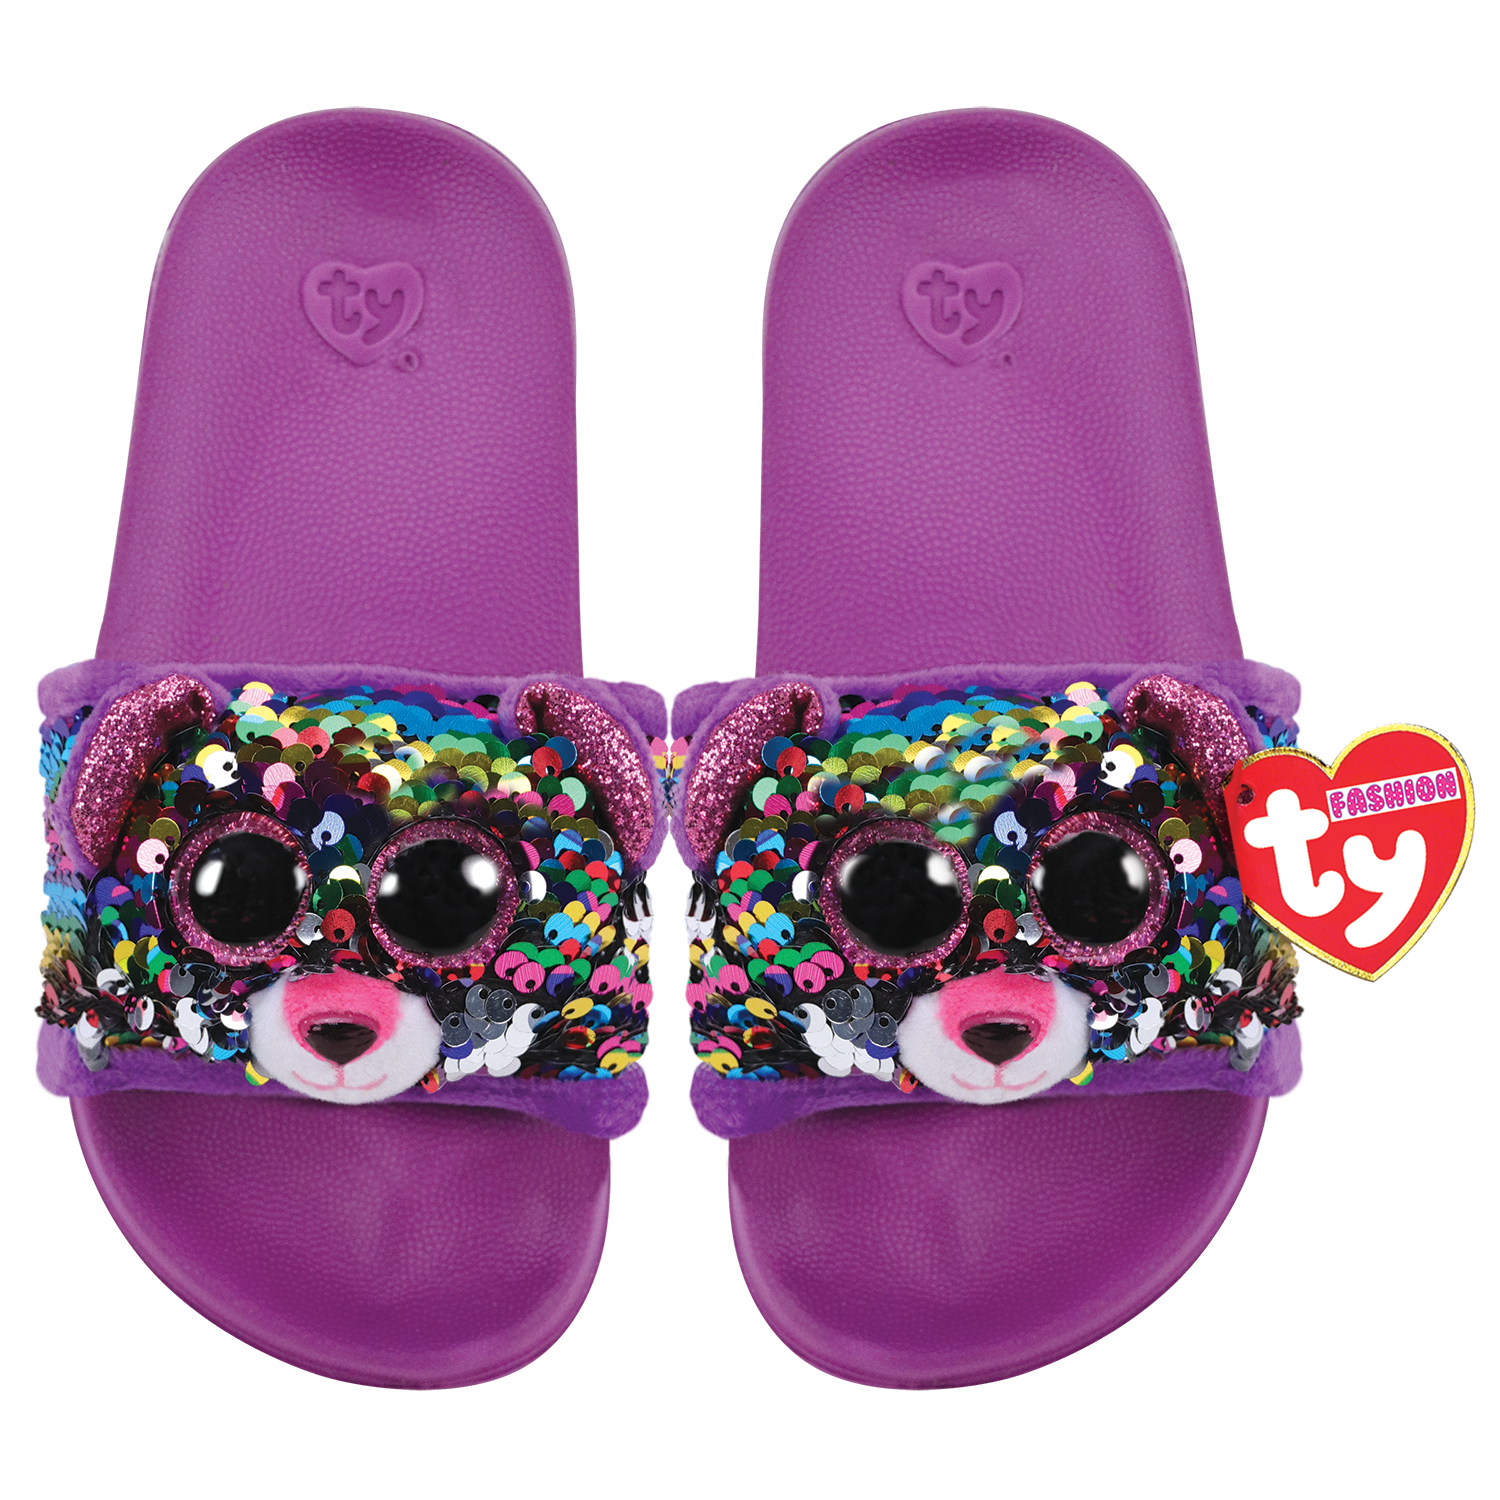 Ty Plush - Sequin Slides - Dotty the Leopard (Size: 28-31) (TY95604)